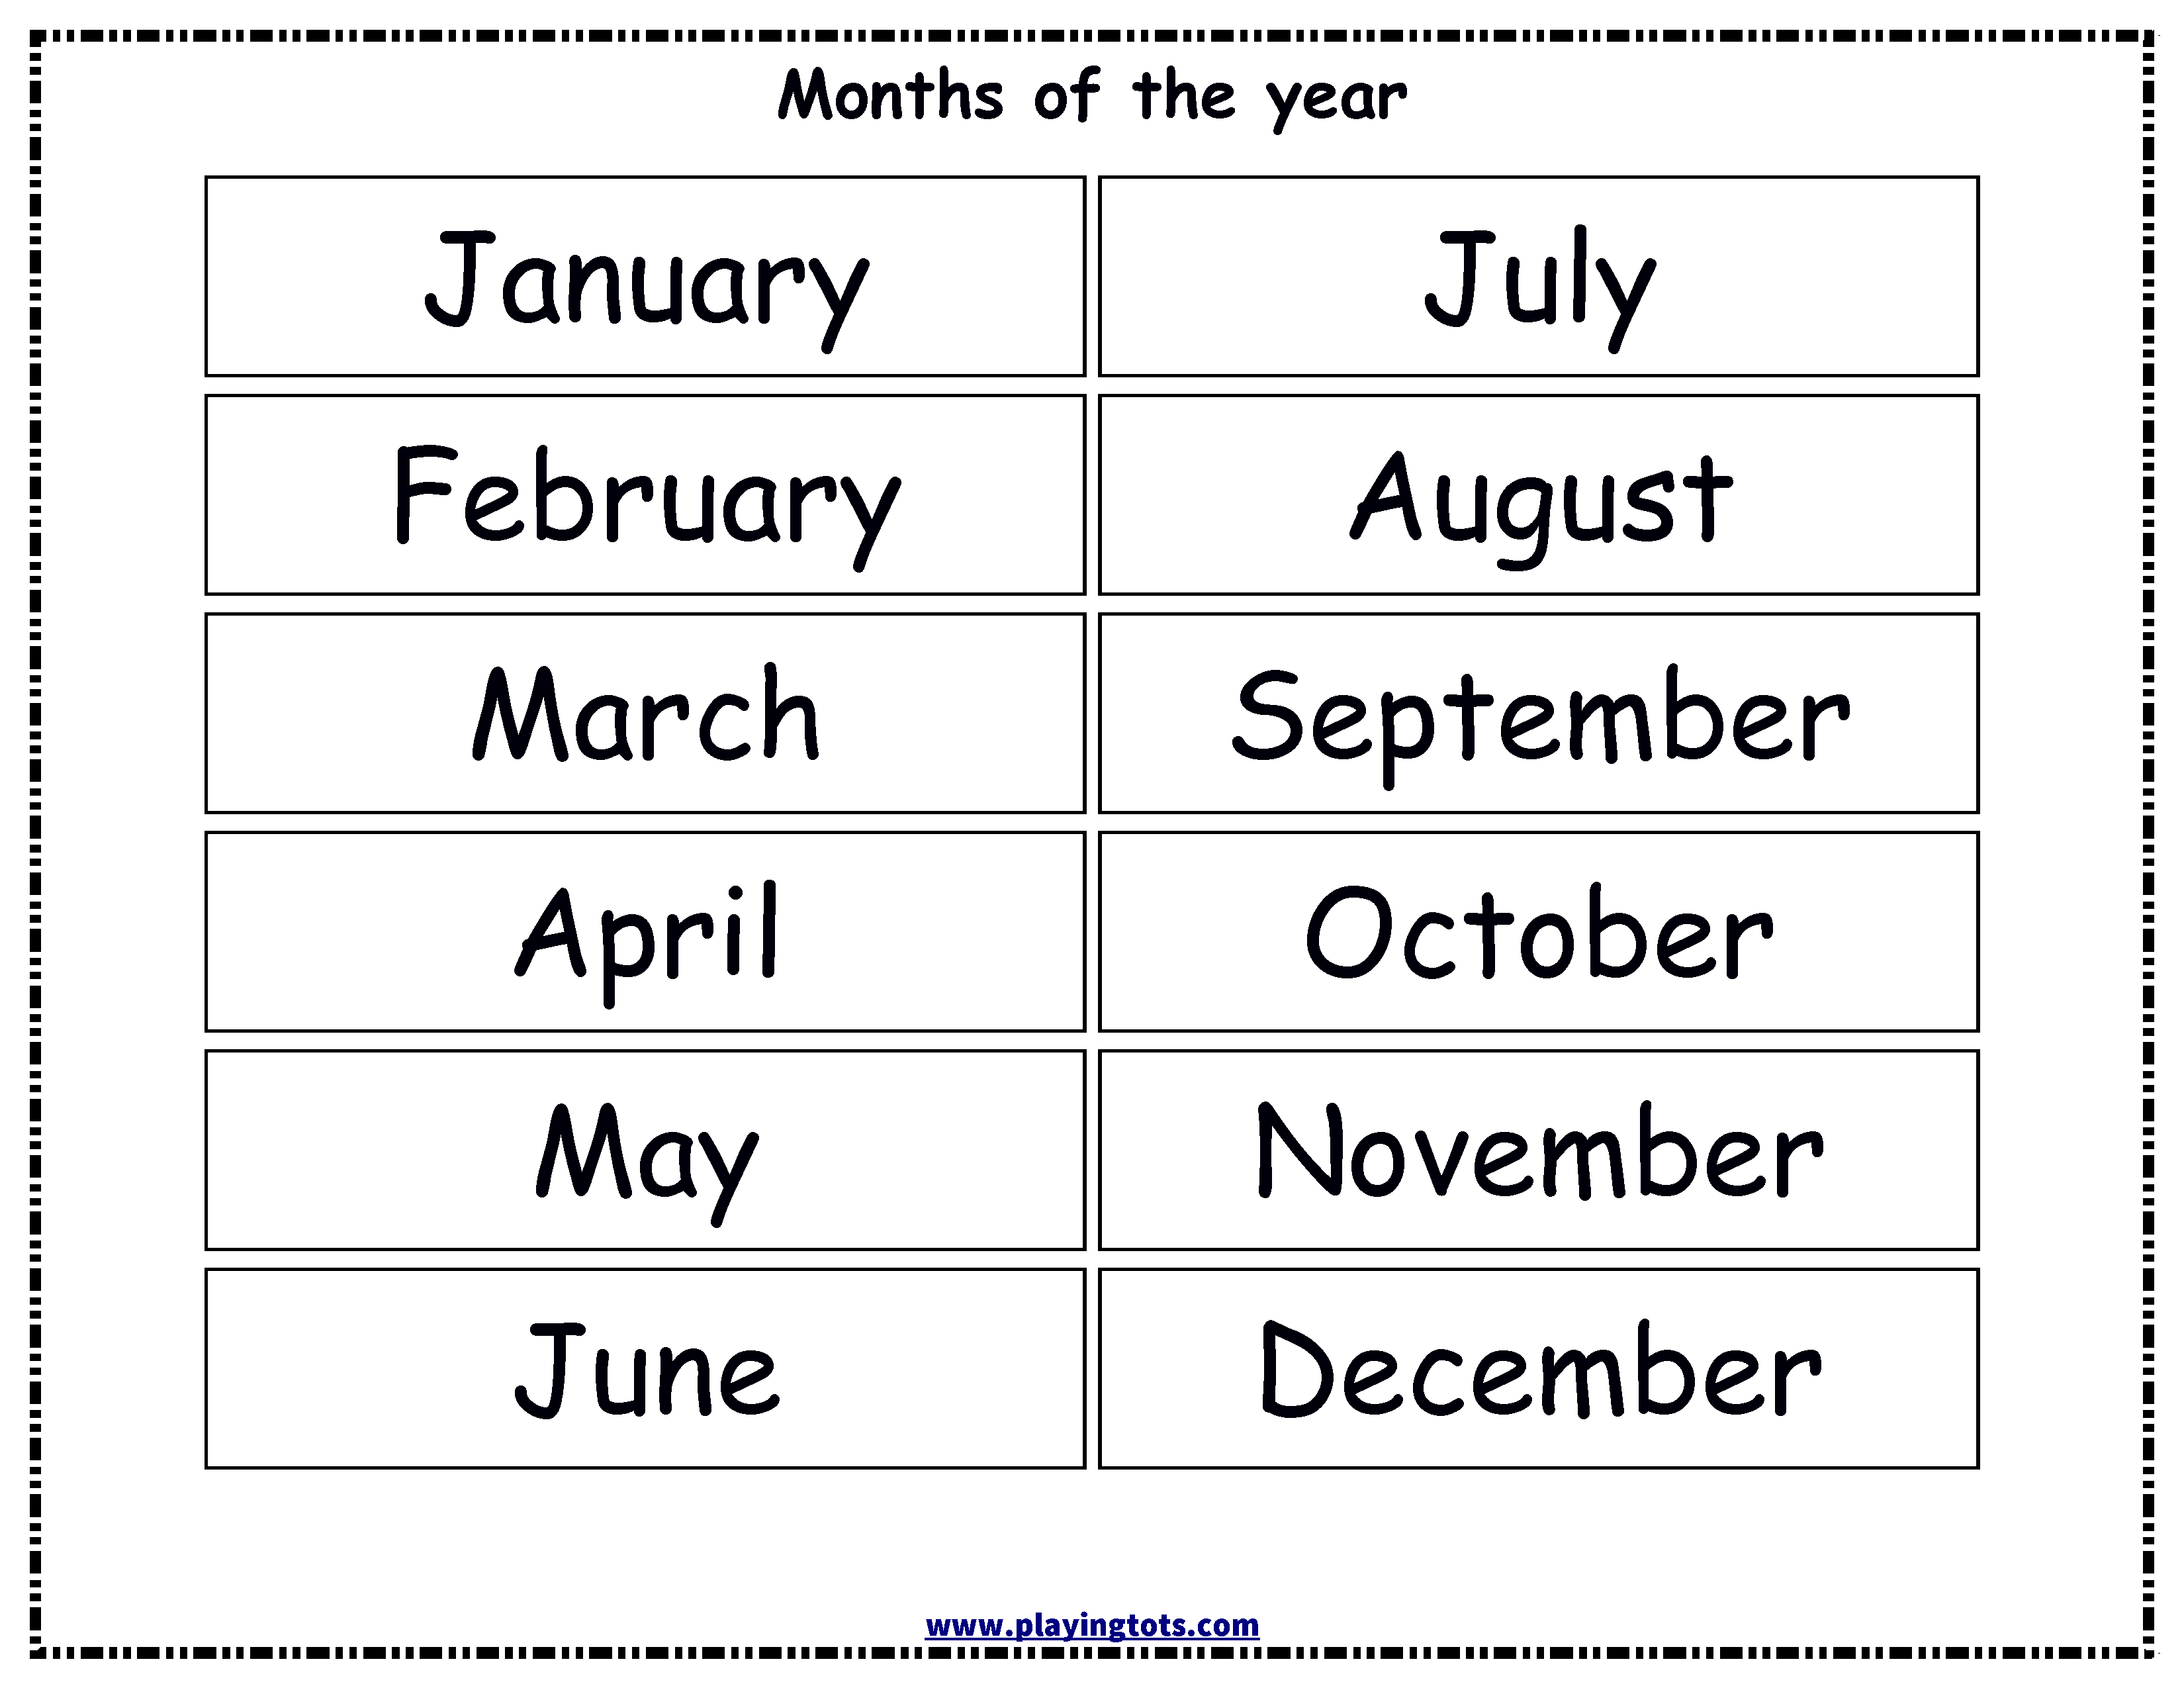 Free Printable Months Of The Year Chart   Alivia Learning Folder - Free Printable Months Of The Year Chart